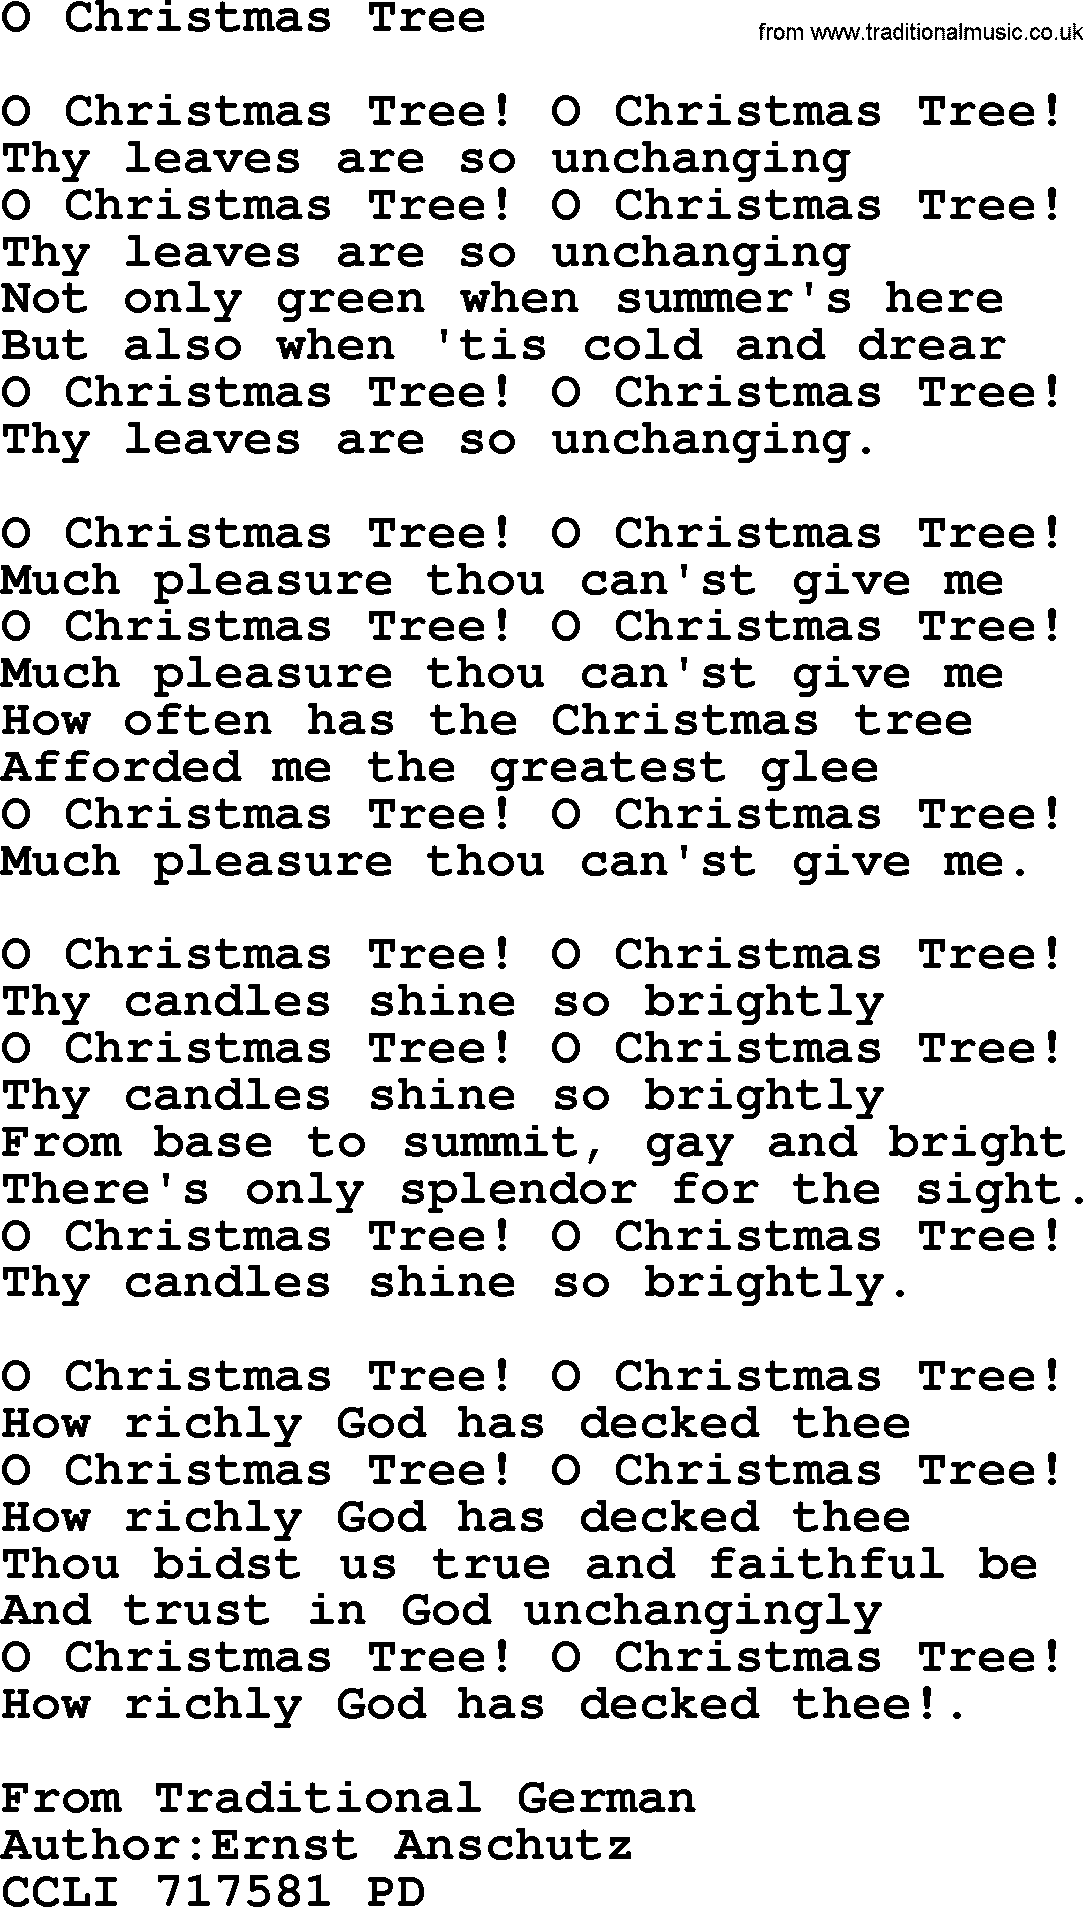 Christmas Powerpoints, Song: O Christmas Tree - Lyrics, PPT(for ...